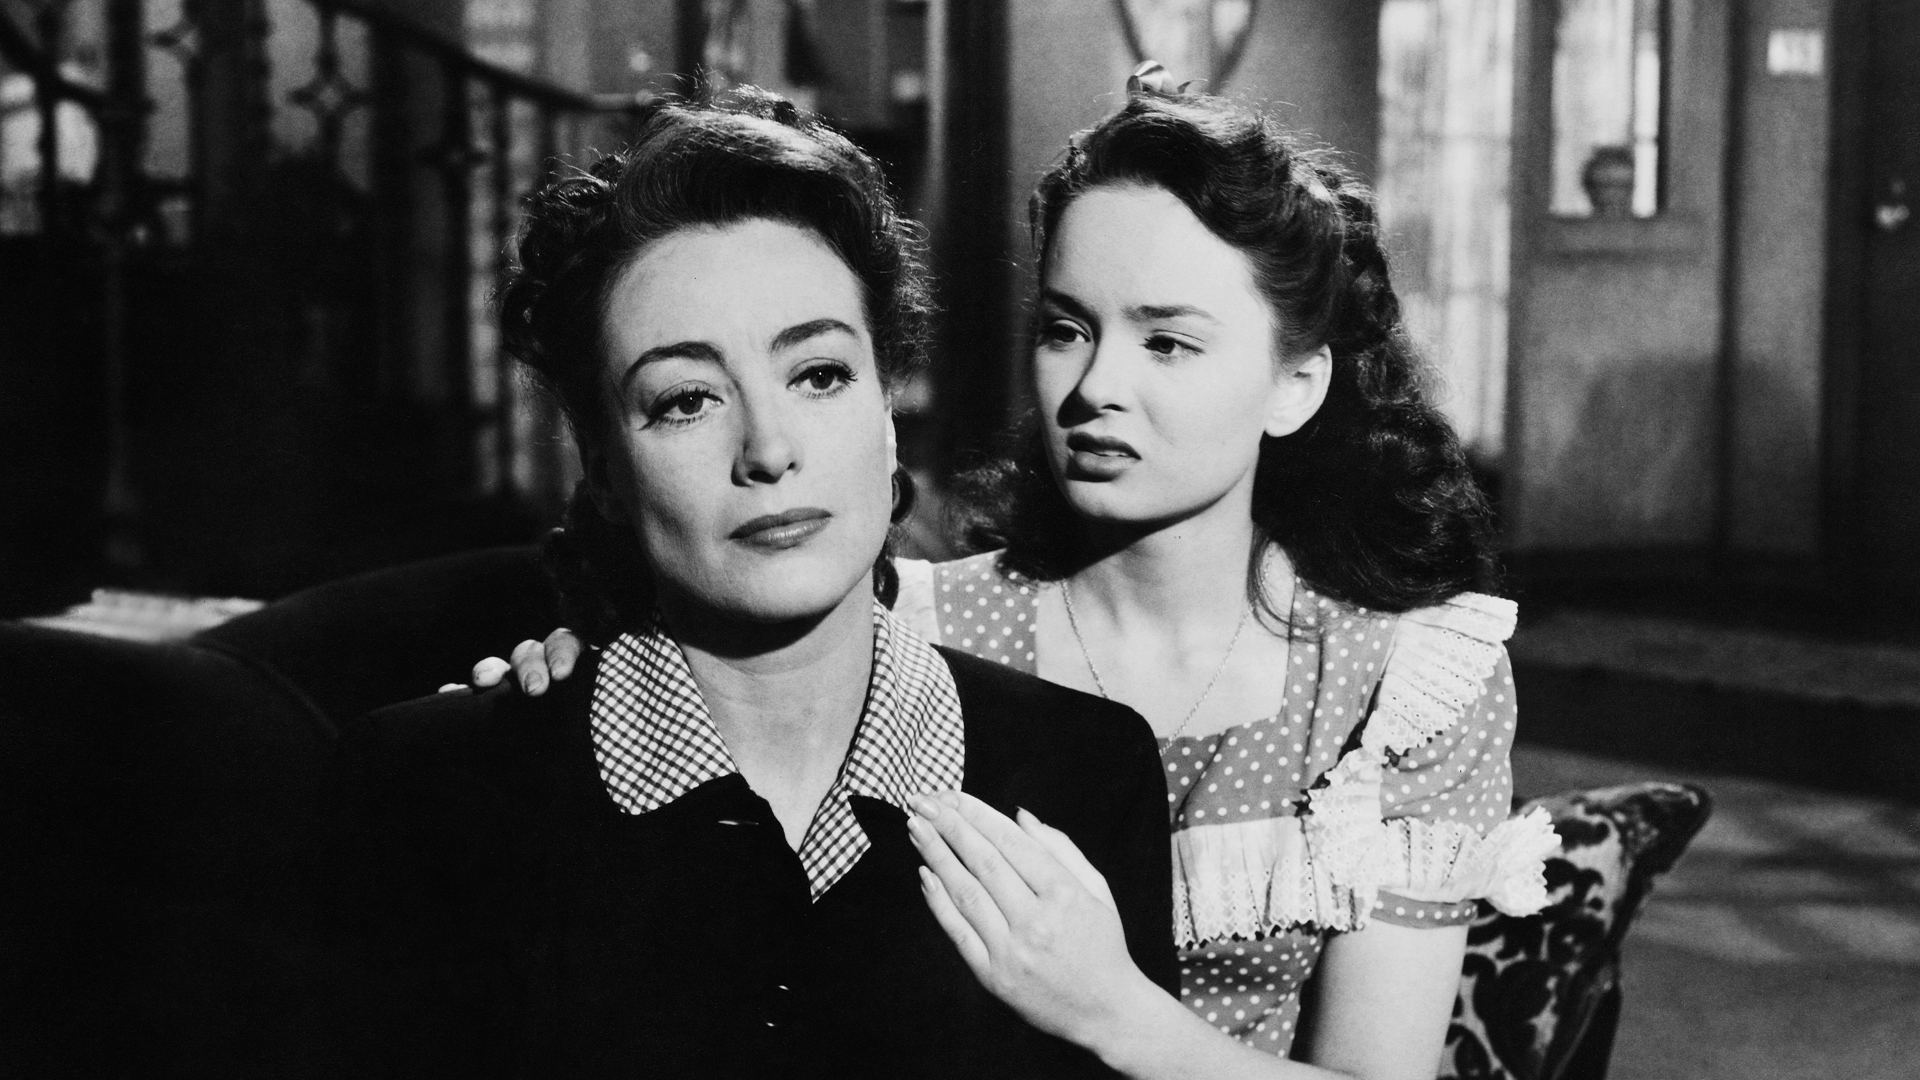 Critic's Notebook: James M. Cain's 'Mildred Pierce' is a realistic look at a life, not noir